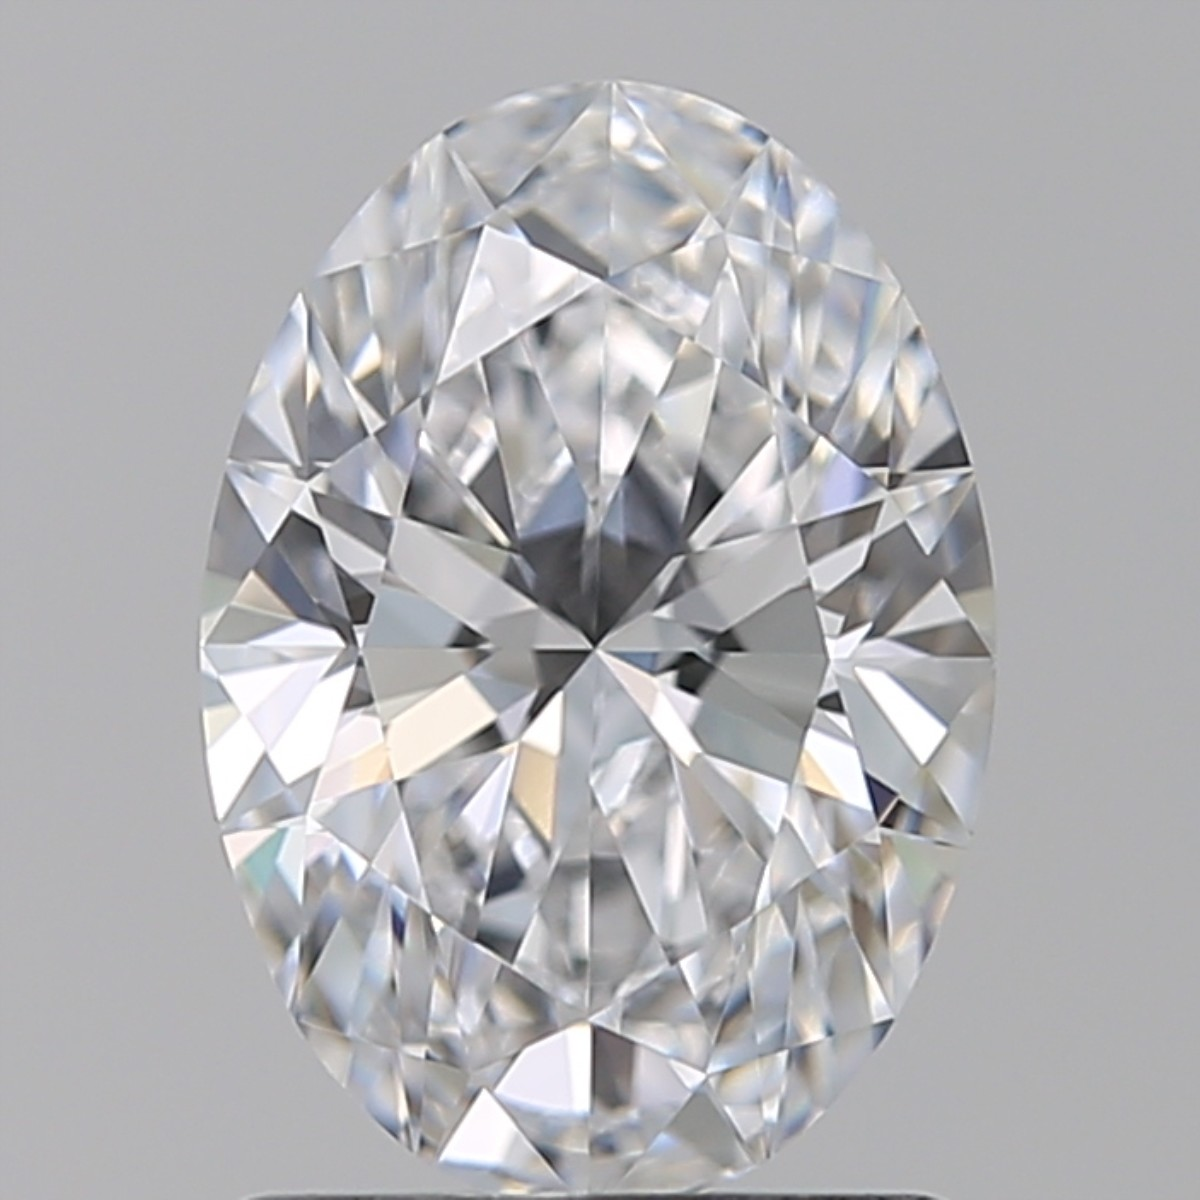 1.21 Carat Oval Diamond (D/VVS1)